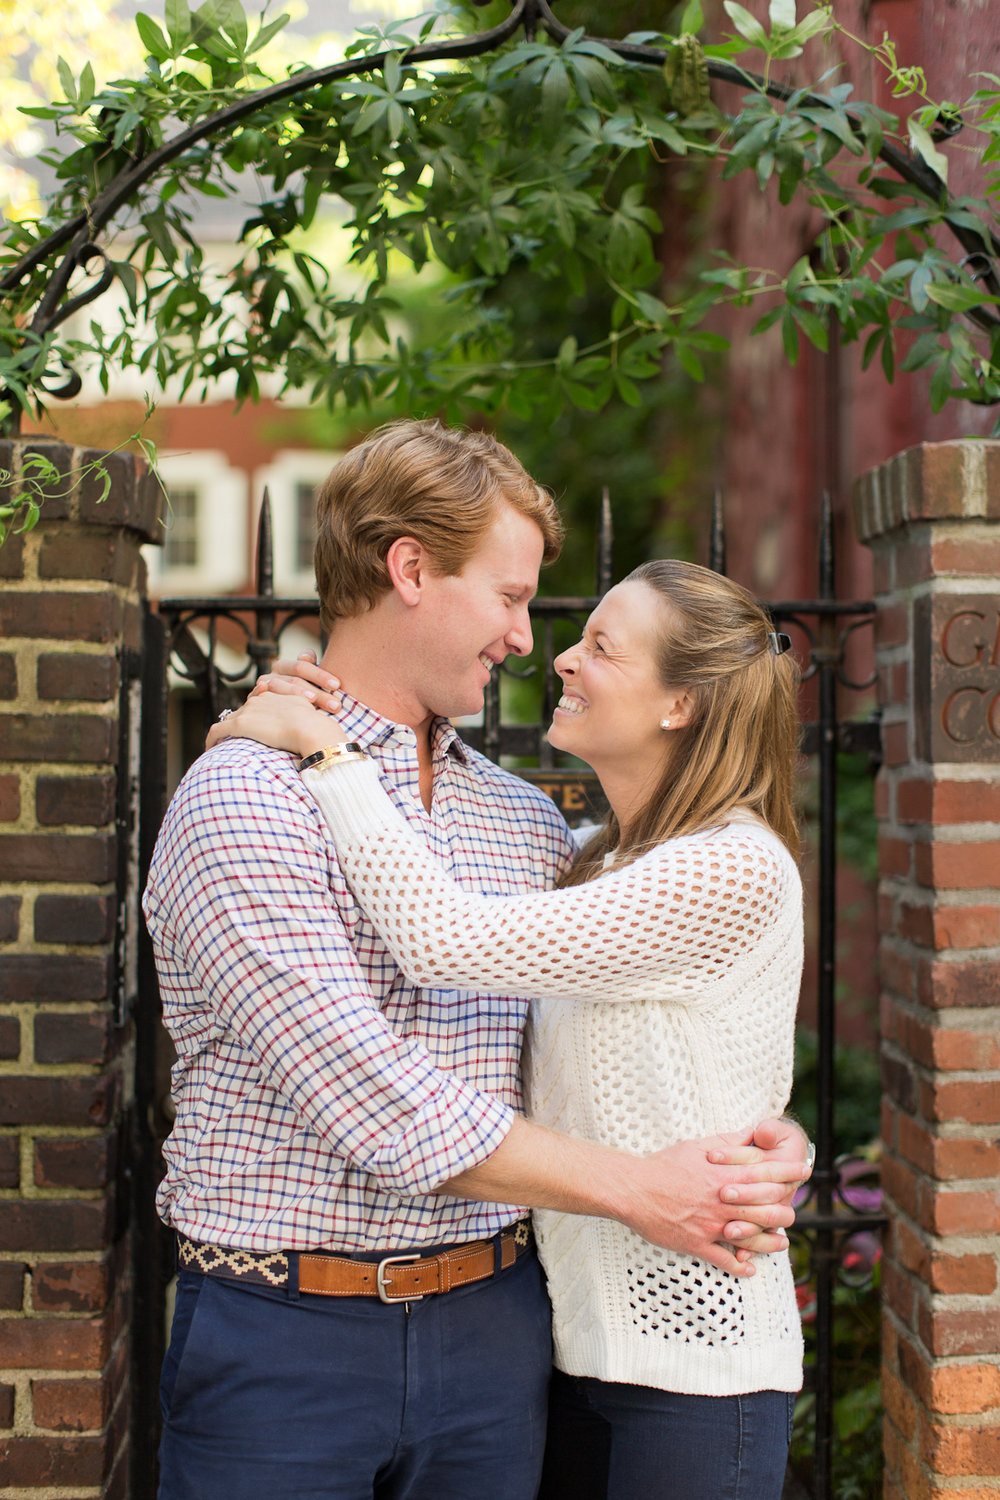 Melissa Kruse Photography - Megan & Tyler West Village Engagement Photos-65.jpg